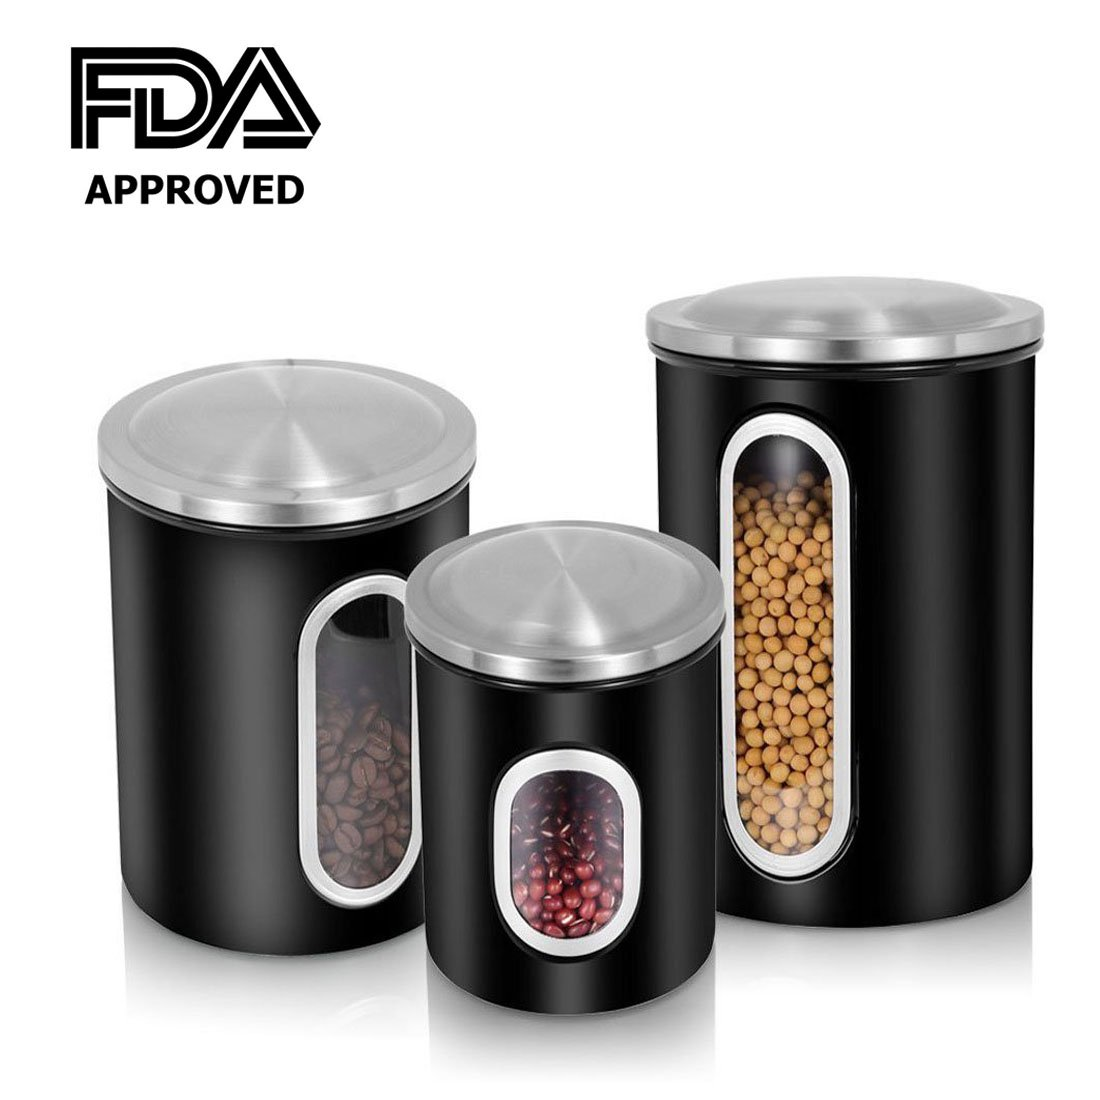 cheap kitchen canister sets cheap kitchen canister sets black find kitchen canister sets black deals on line at alibaba com 3696